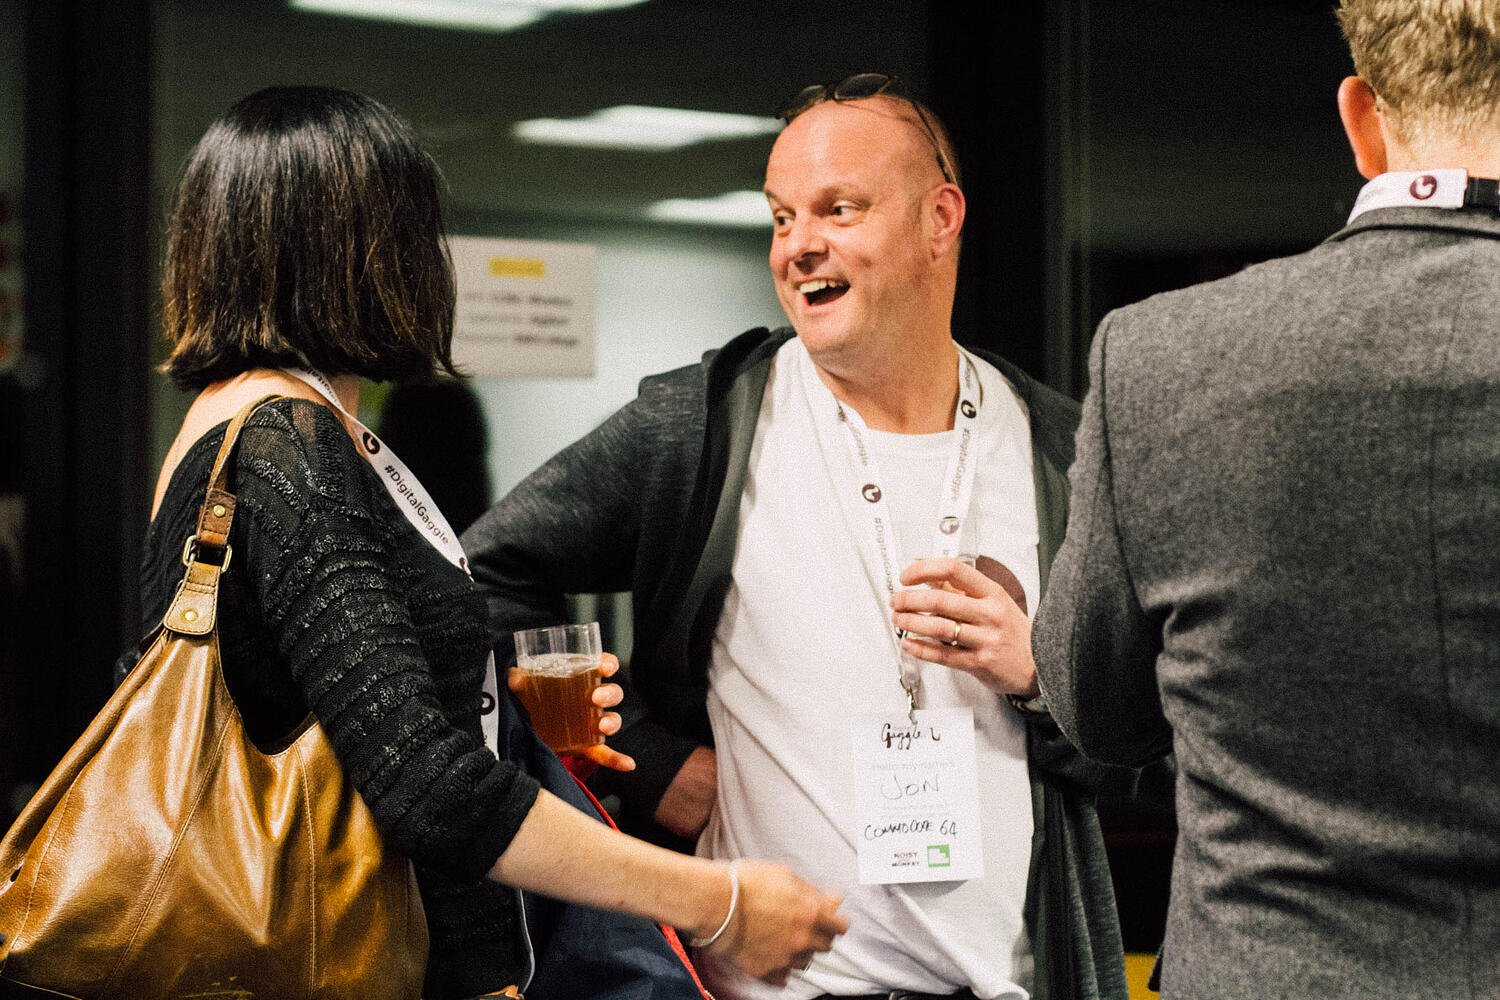 All the laughs at Bath Digital Festival!